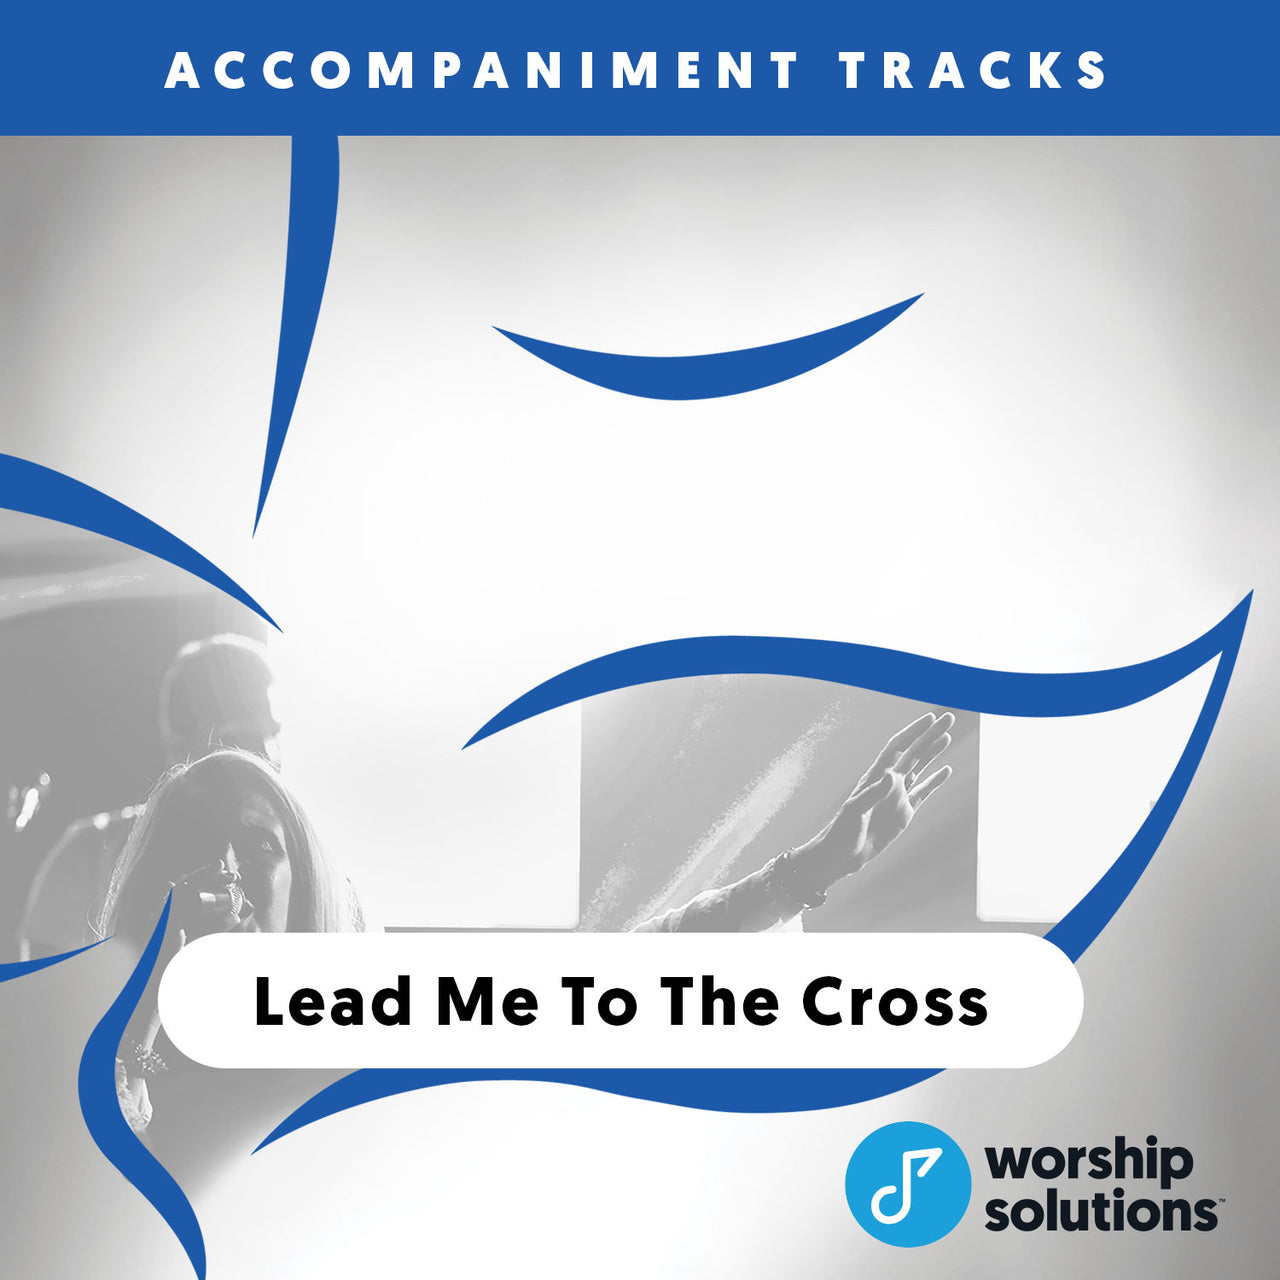 Lead Me To The Cross, Accompaniment Track